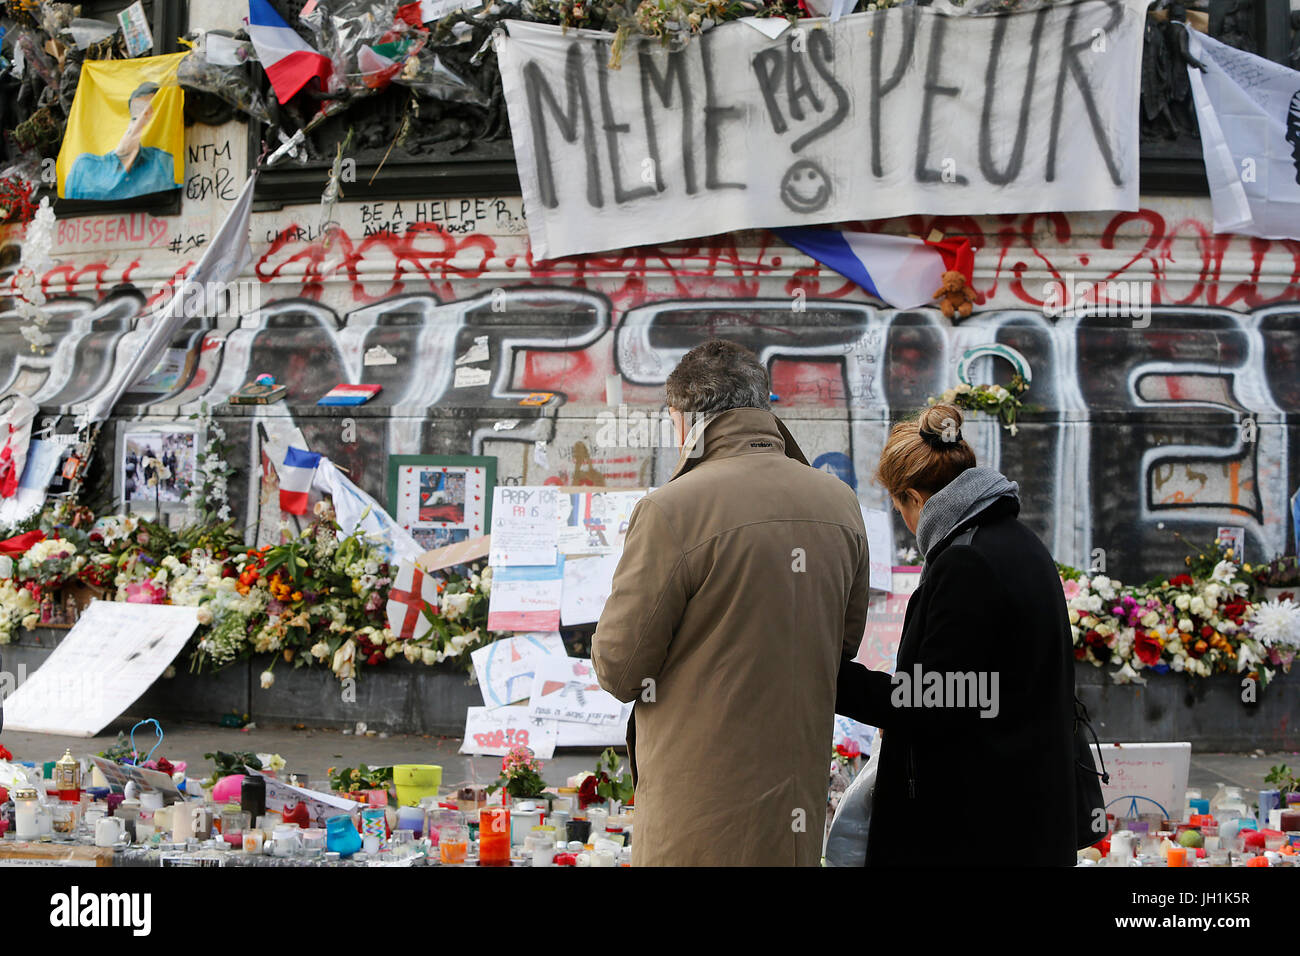 Terrorist attack memorial at Place de la RŽpublique, Paris. France. - Stock Image